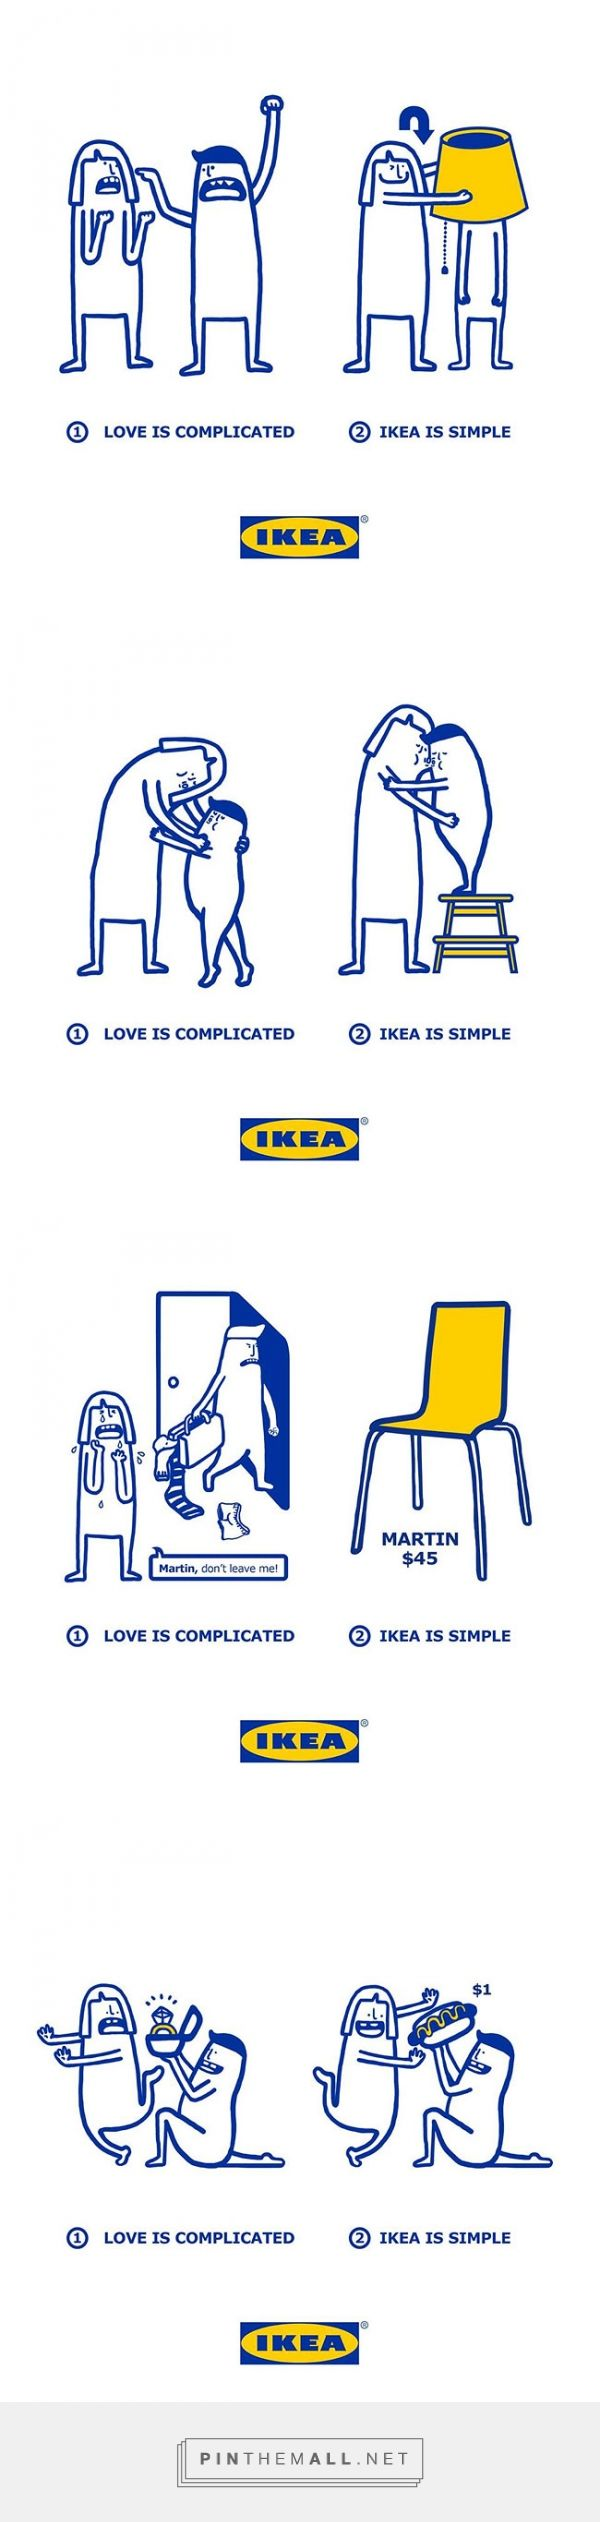 105 best ikea images on Pinterest | Ikea, Cameras and Ikea ikea